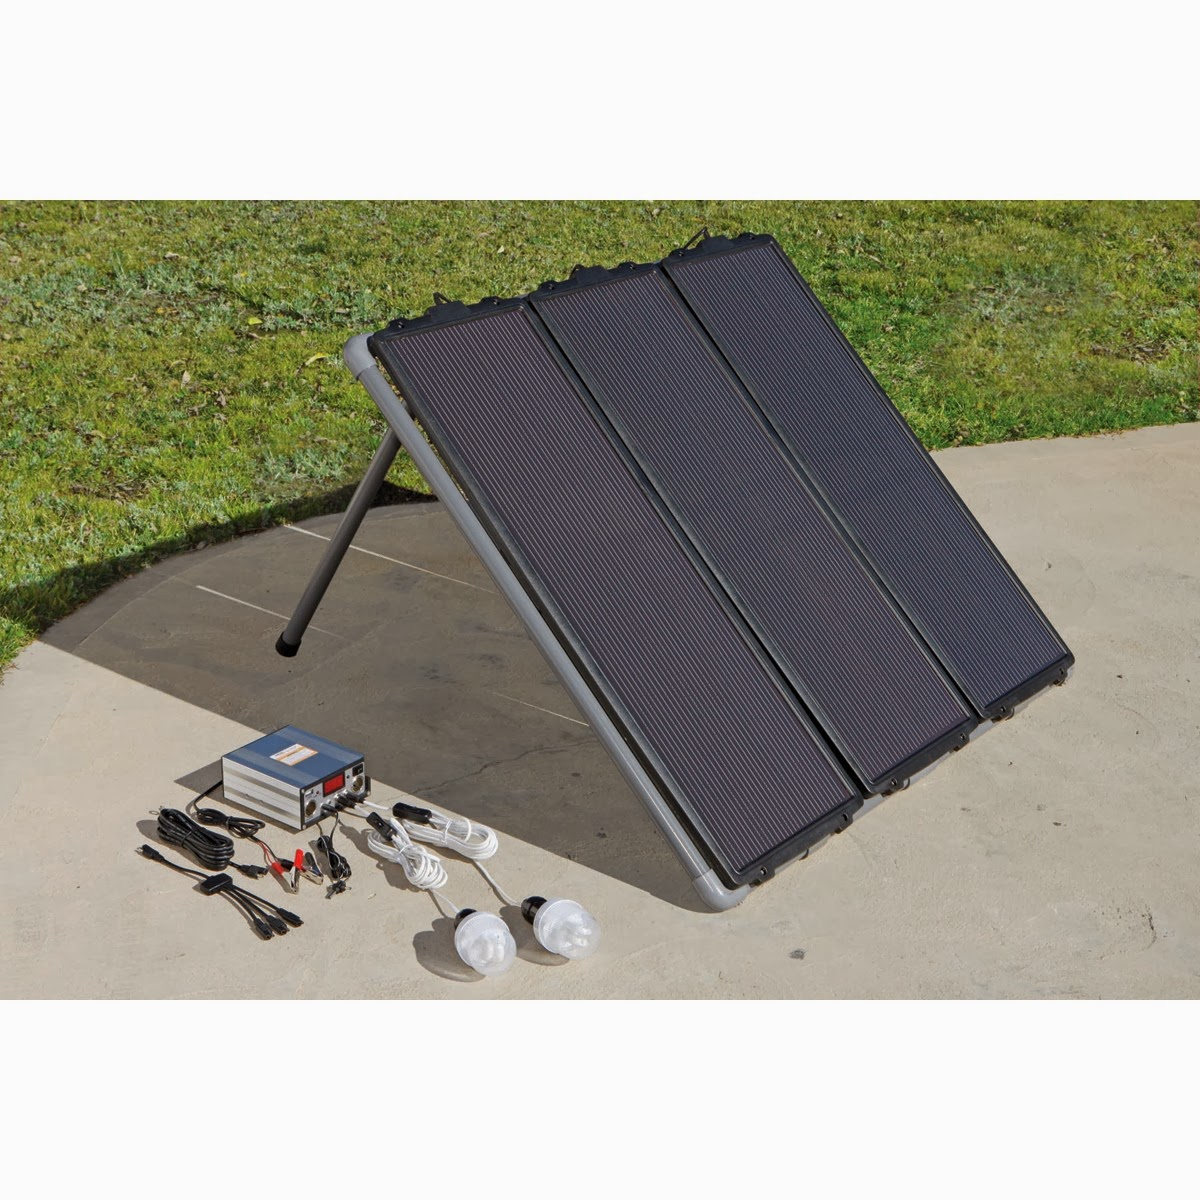 Main Components of Solar Panel Kits